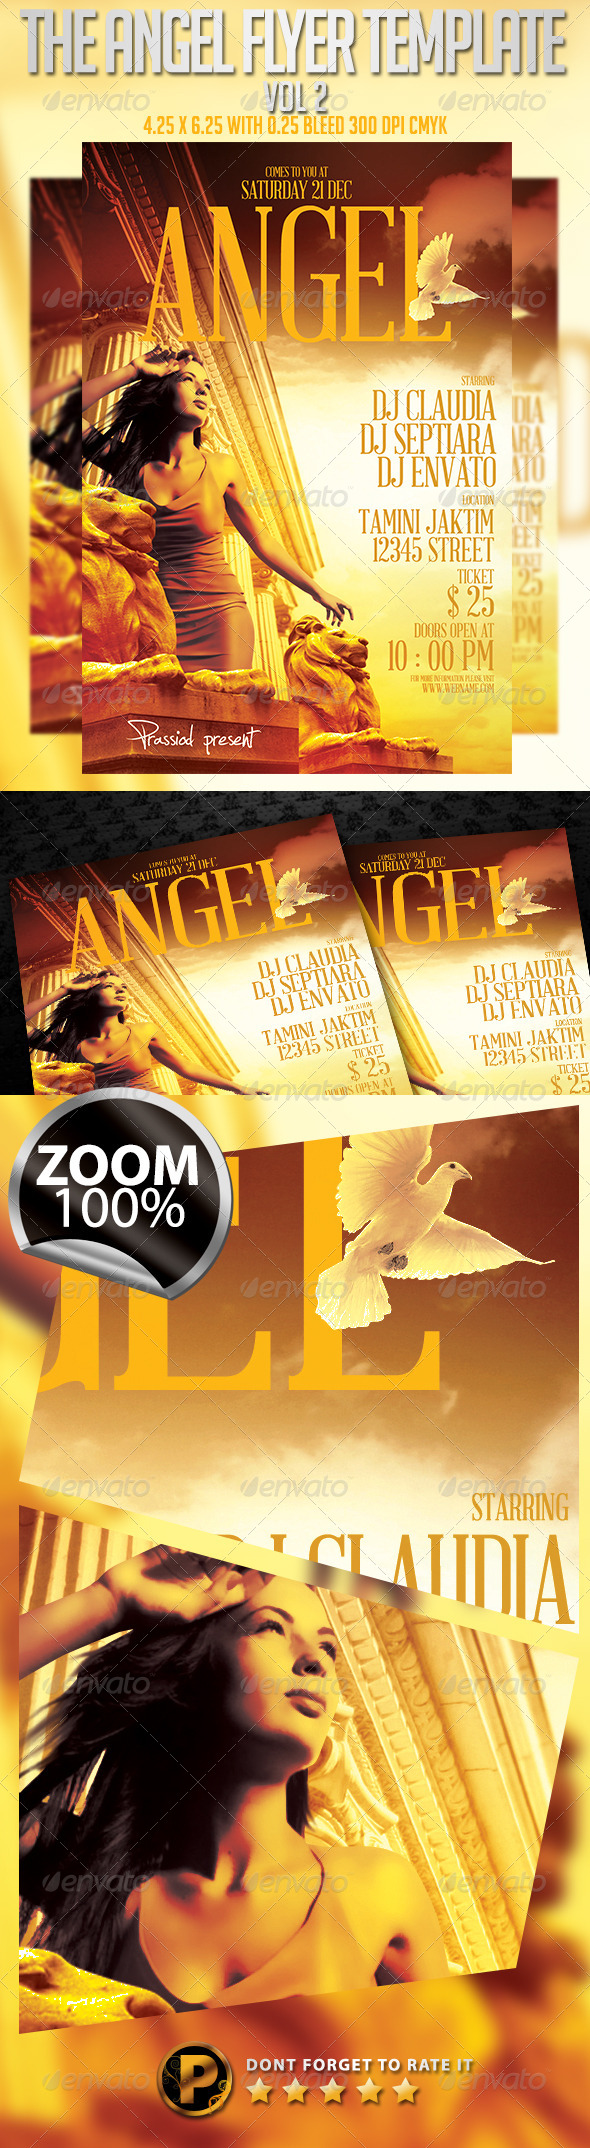 The Angel Flyer Template Vol 2 - Clubs & Parties Events